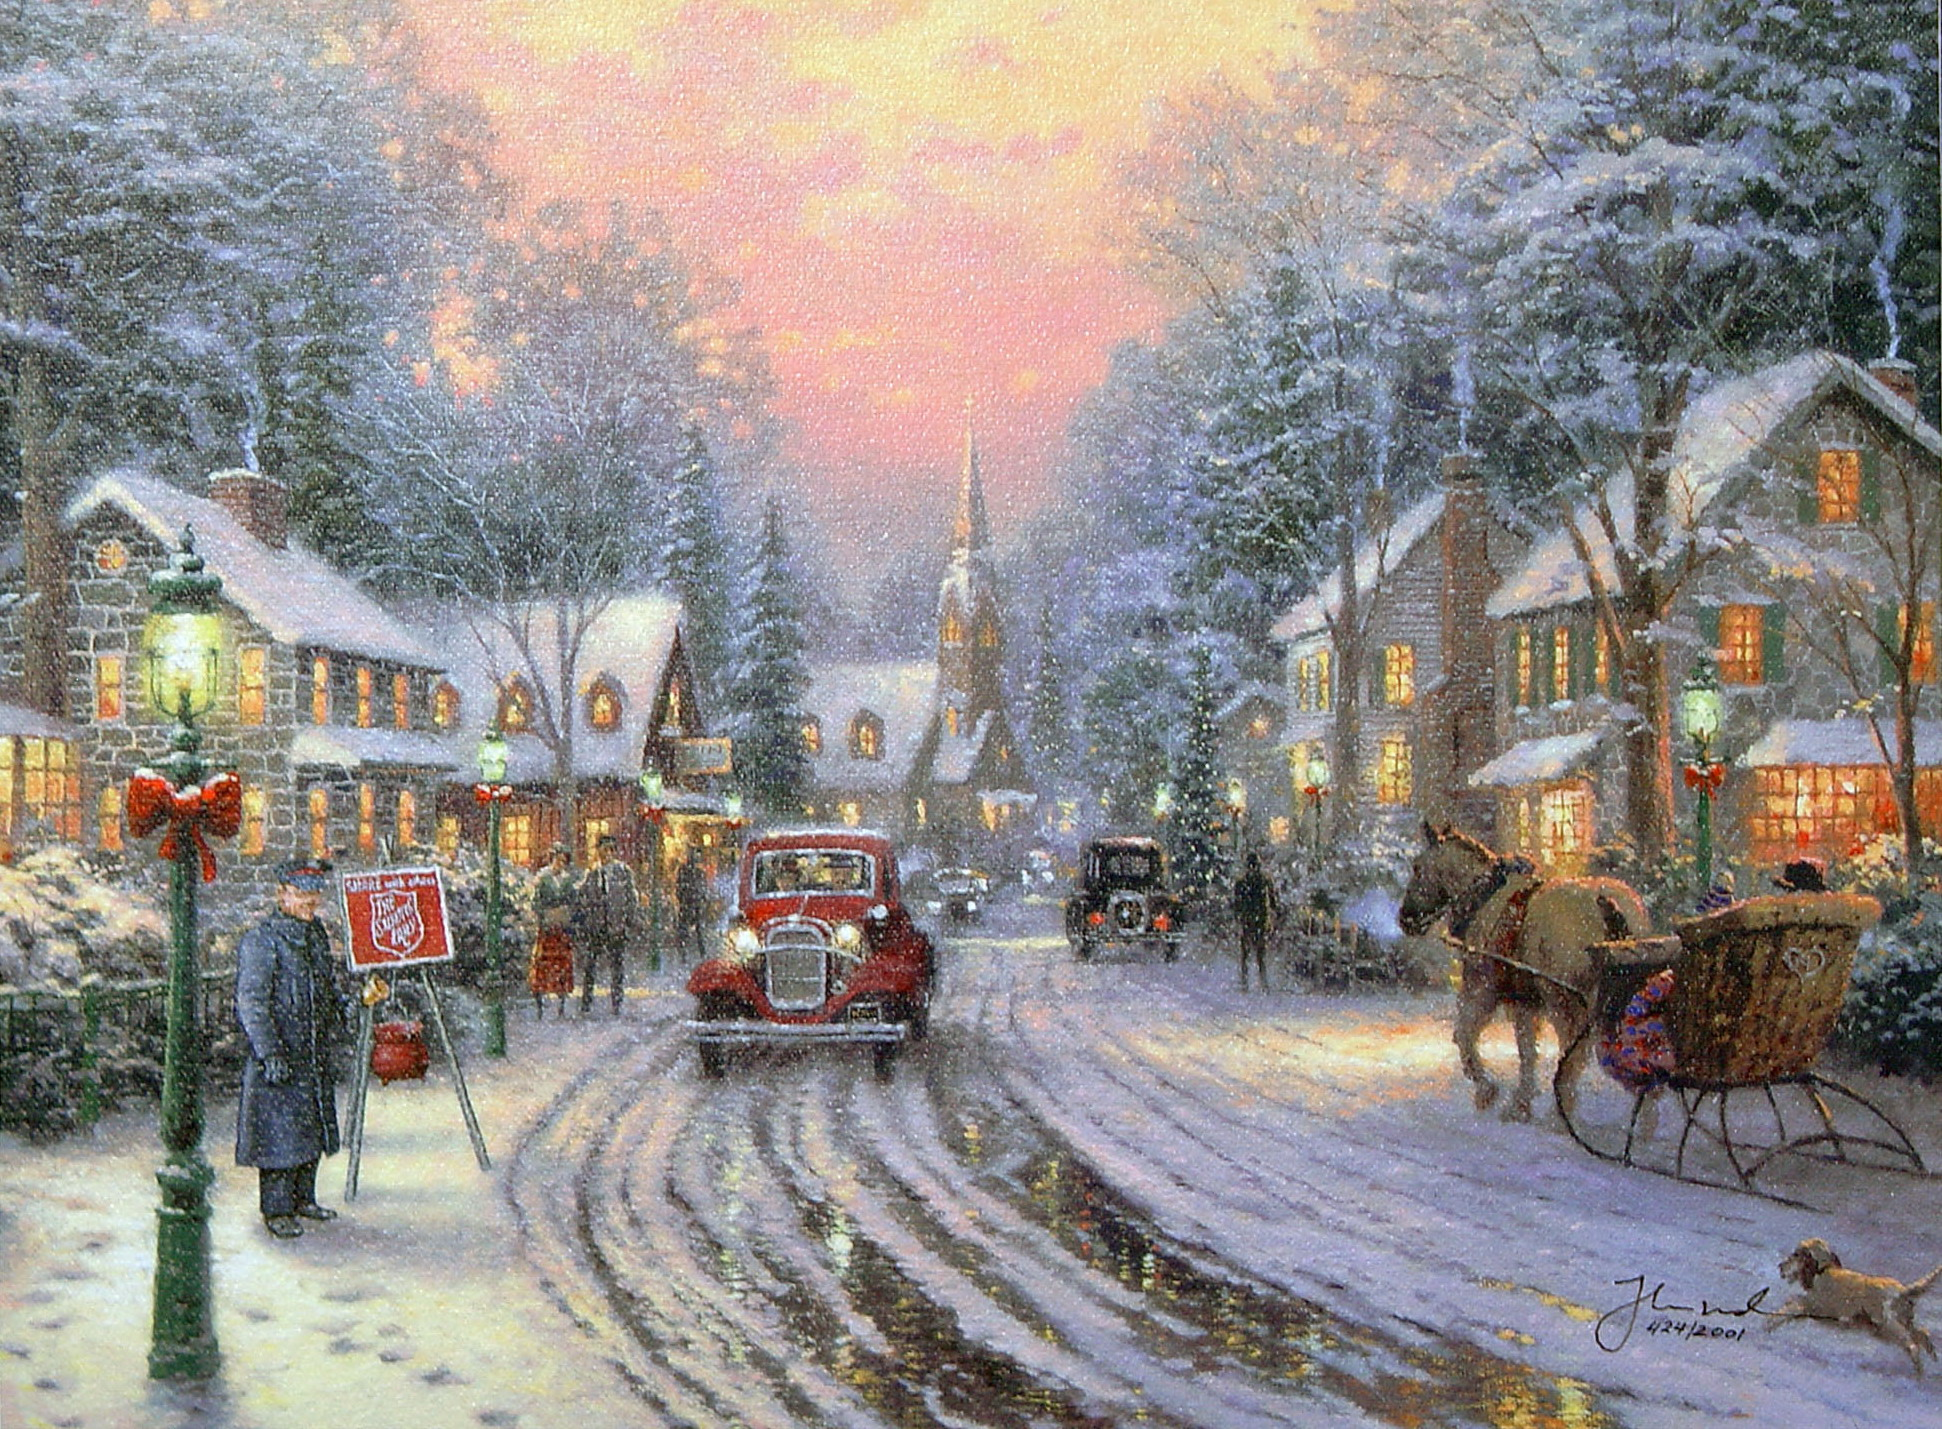 Thomas Kinkade Christmas.Thomas Kinkade Christmas Christmas Photo 40842040 Fanpop